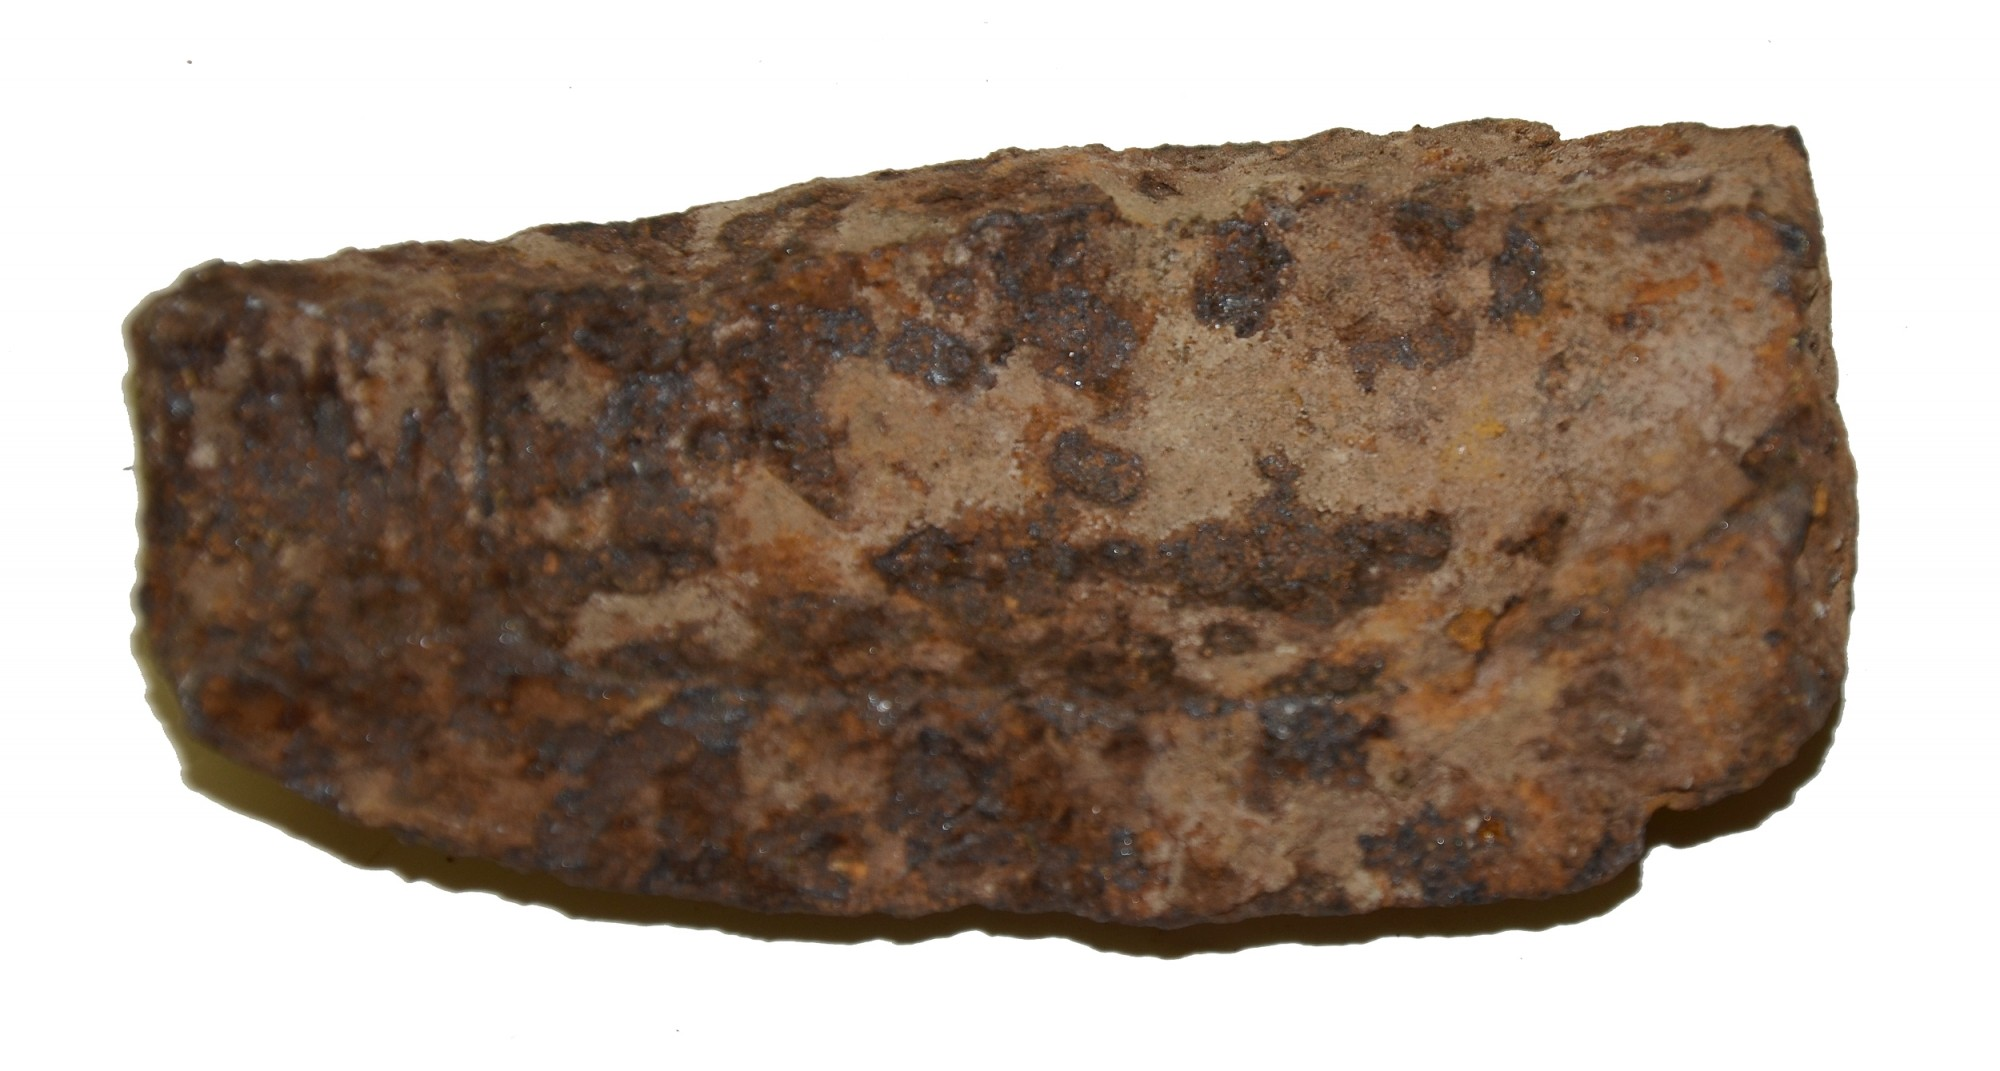 US 3-INCH HOTCHKISS SHELL FRAGMENT FROM CULP'S HILL AREA